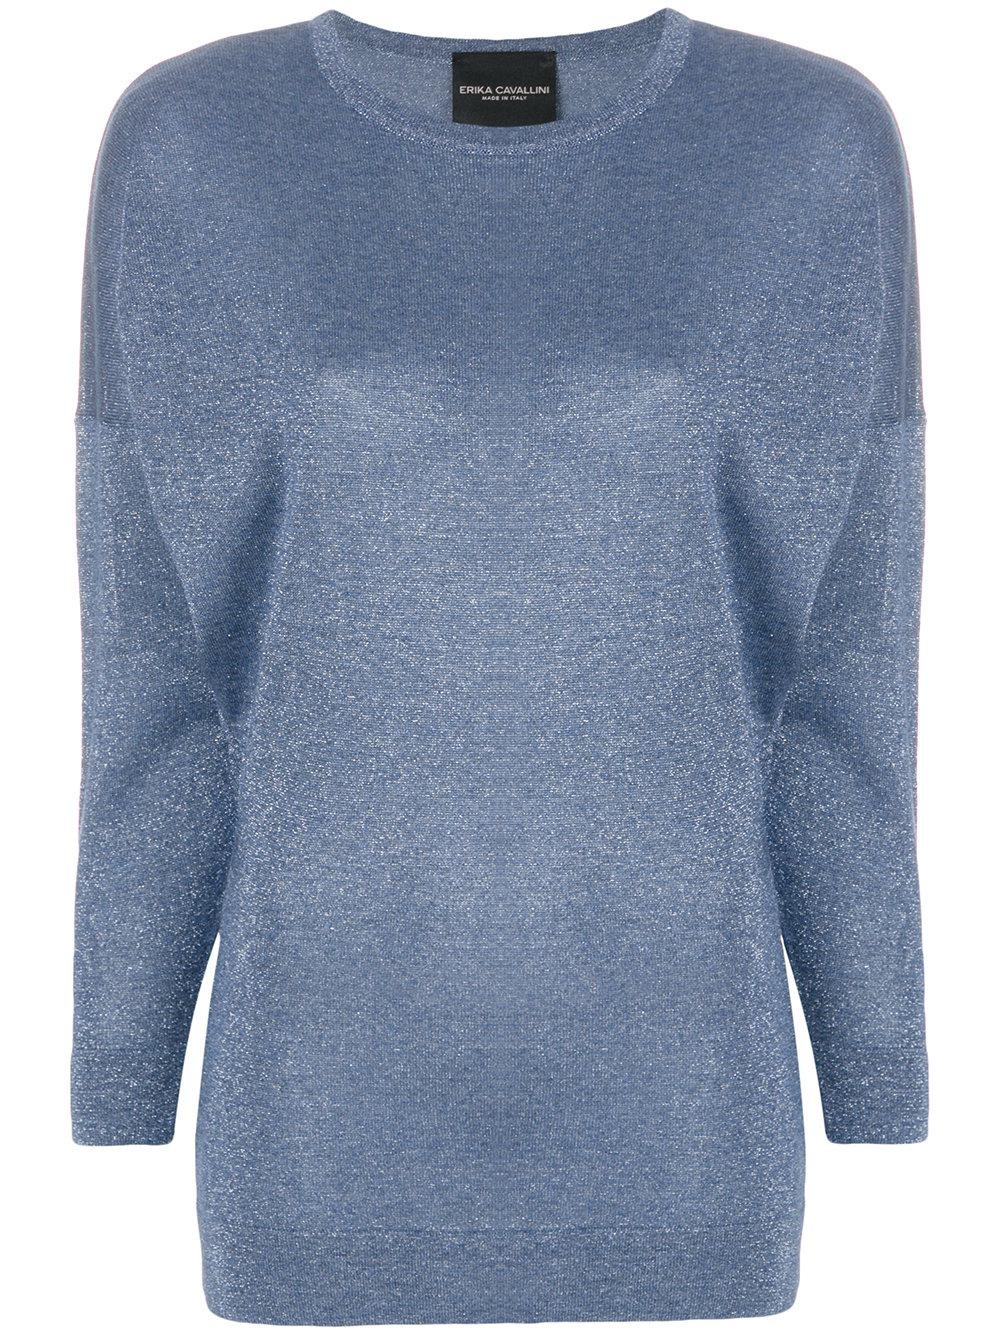 Pre Order Sale Online boat neck sweater - Blue Erika Cavallini Semi Couture Lowest Price Free Shipping Best Sale Manchester Great Sale For Sale 0r8D0wWo